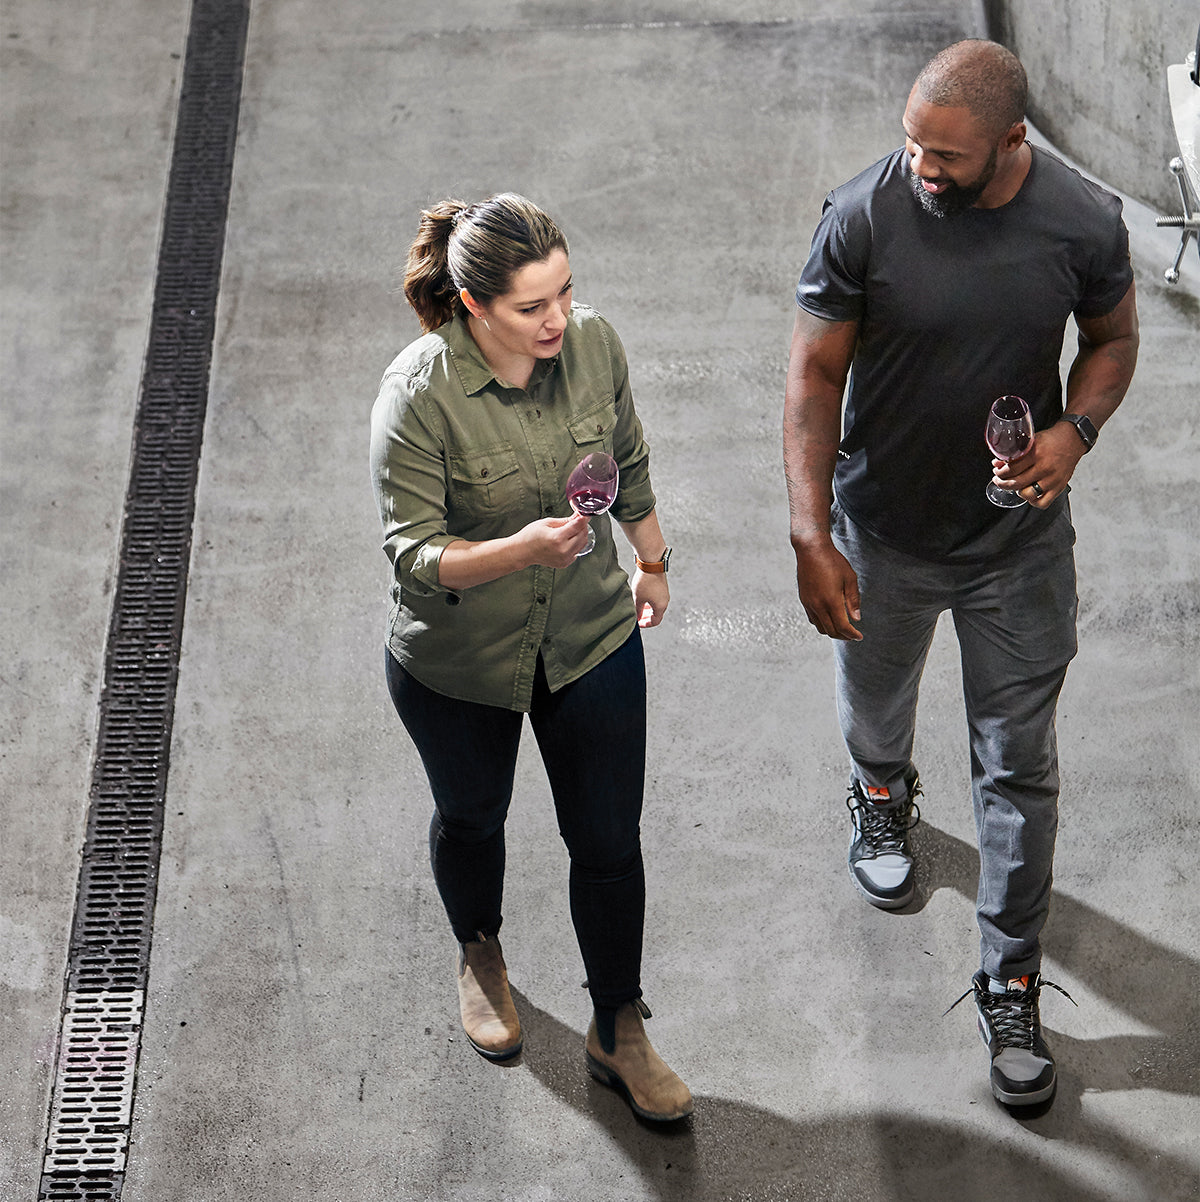 Intercept Winemaker Amanda Gorter and Charles Woodson walking through the winery. Photo by Christina Schmidhofer.